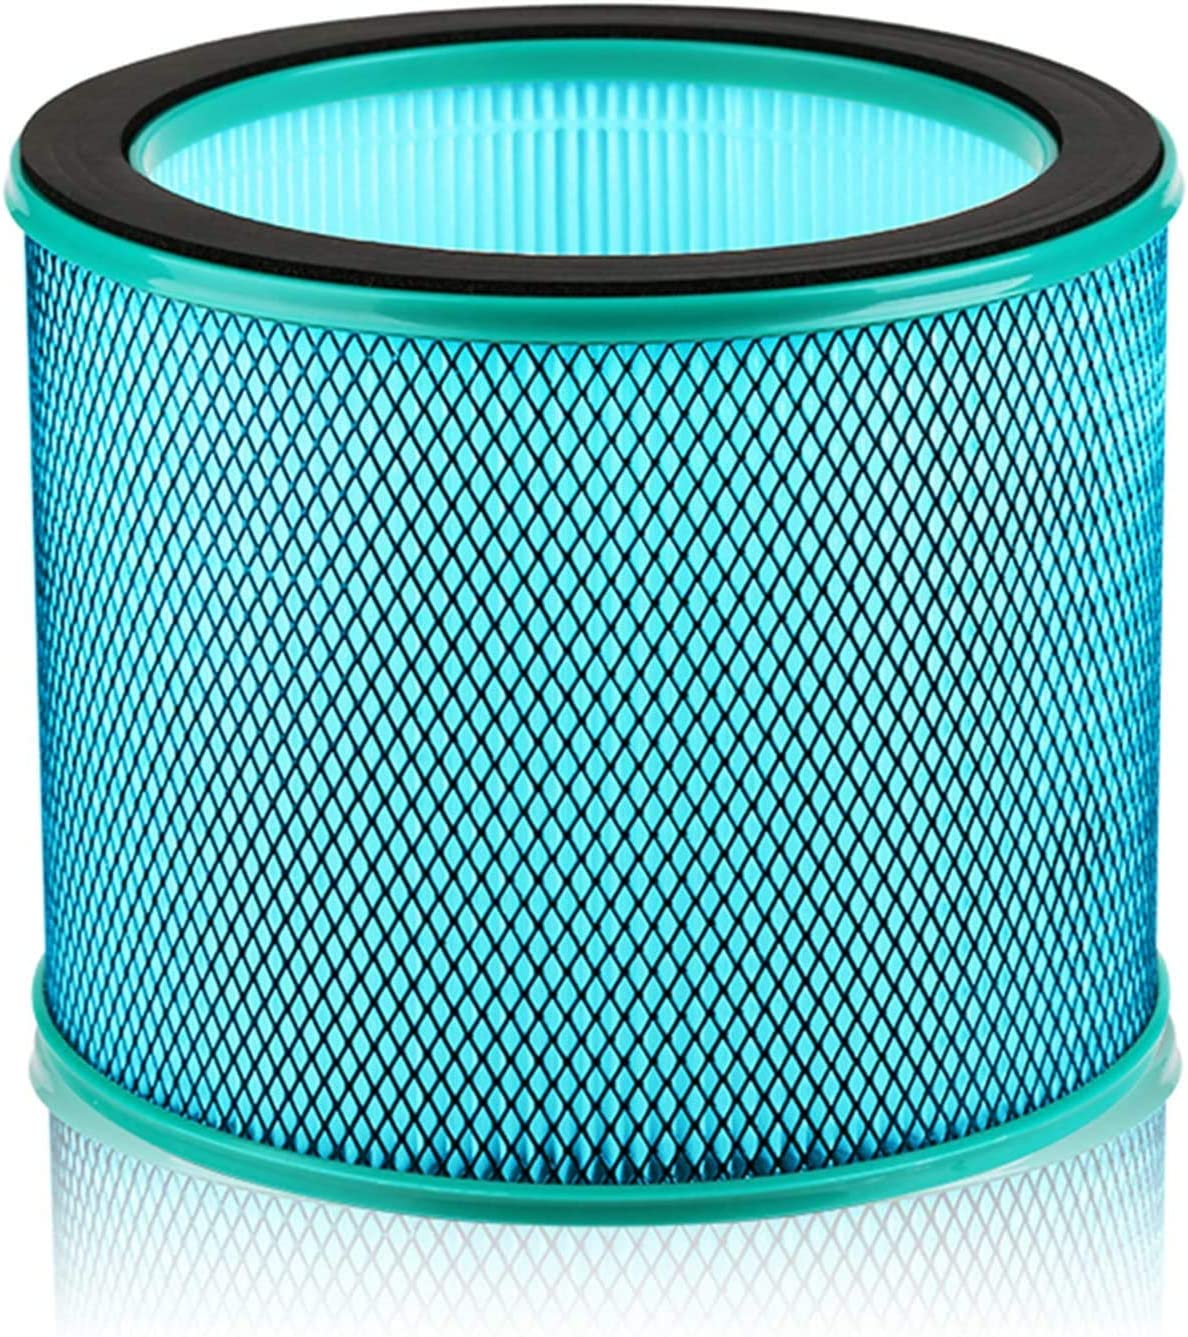 ULTTY U Lowest price challenge H13 HEPA Replacement Ranking TOP5 Filter R21 Medica Purifying Fan for